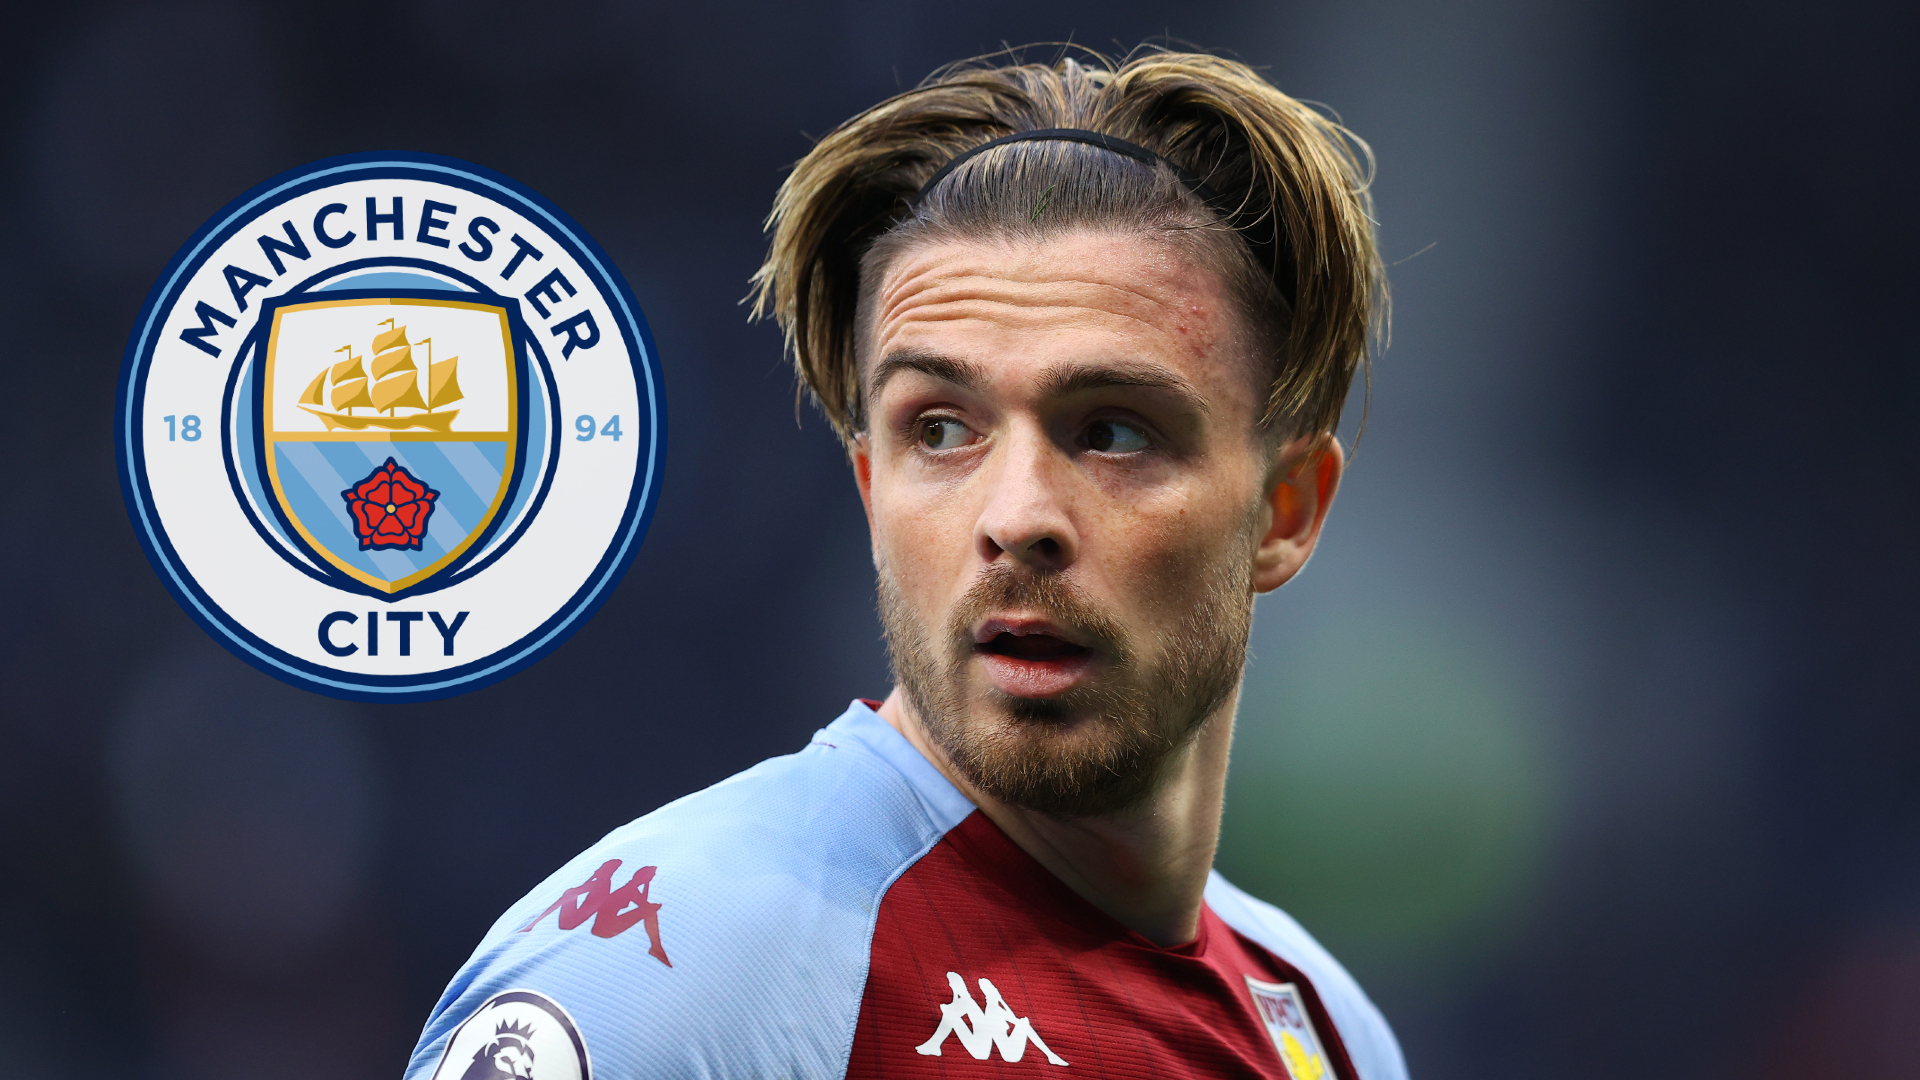 Transfer news and rumours LIVE: Man City still eyeing Kane and Grealish deals